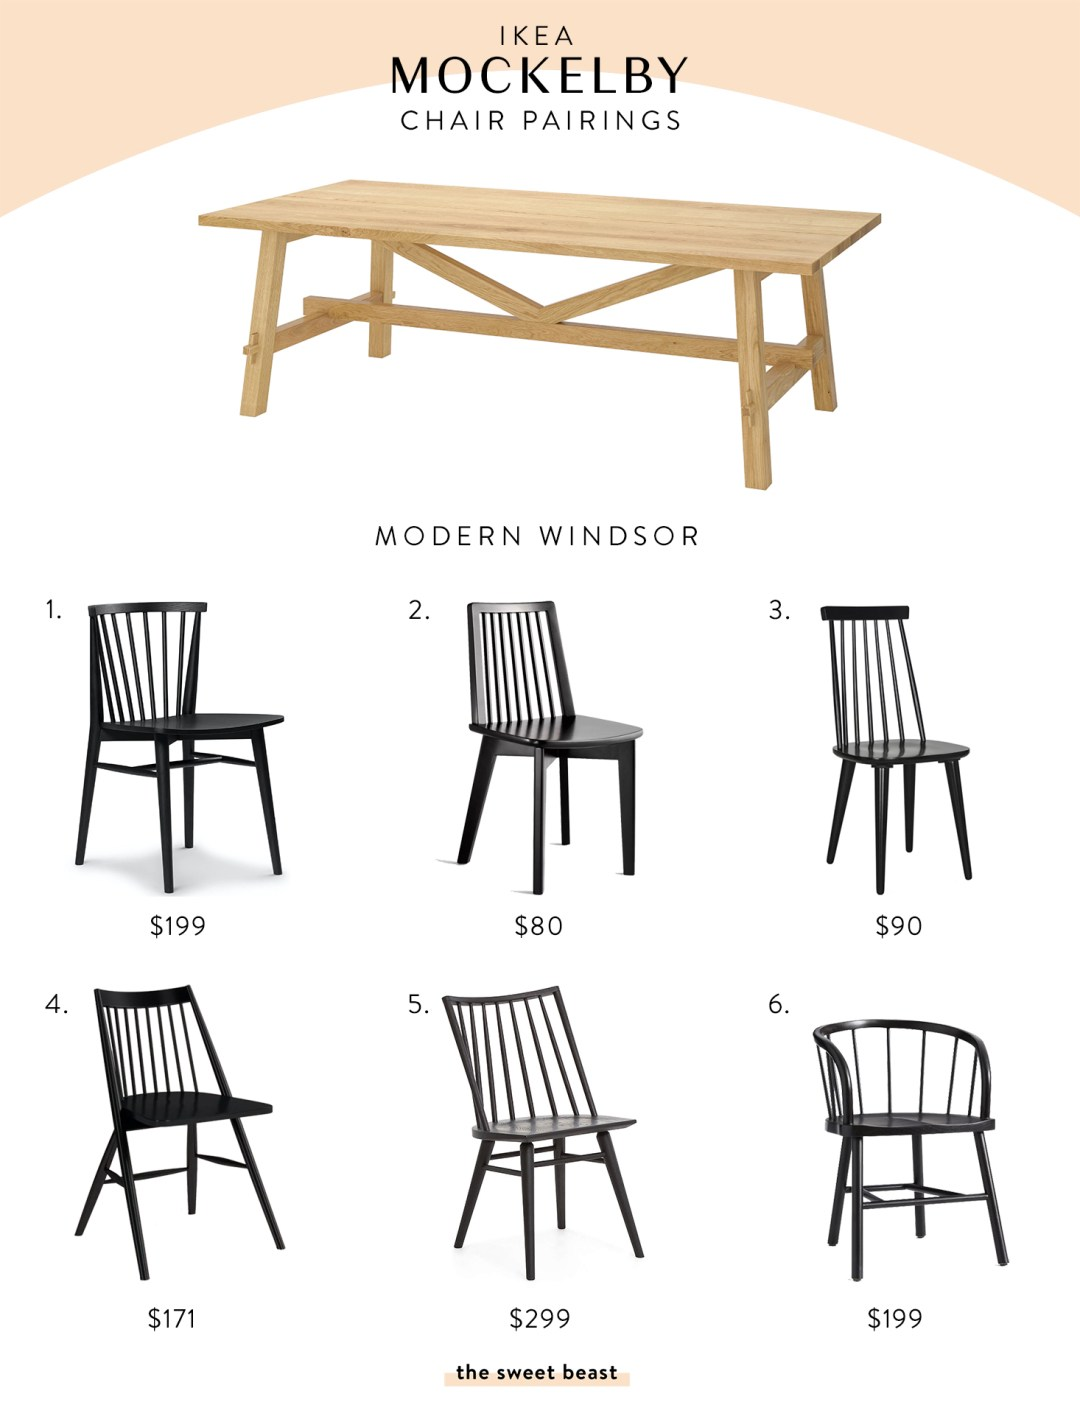 Ikea Mockelby dining table black windsor chair pairings